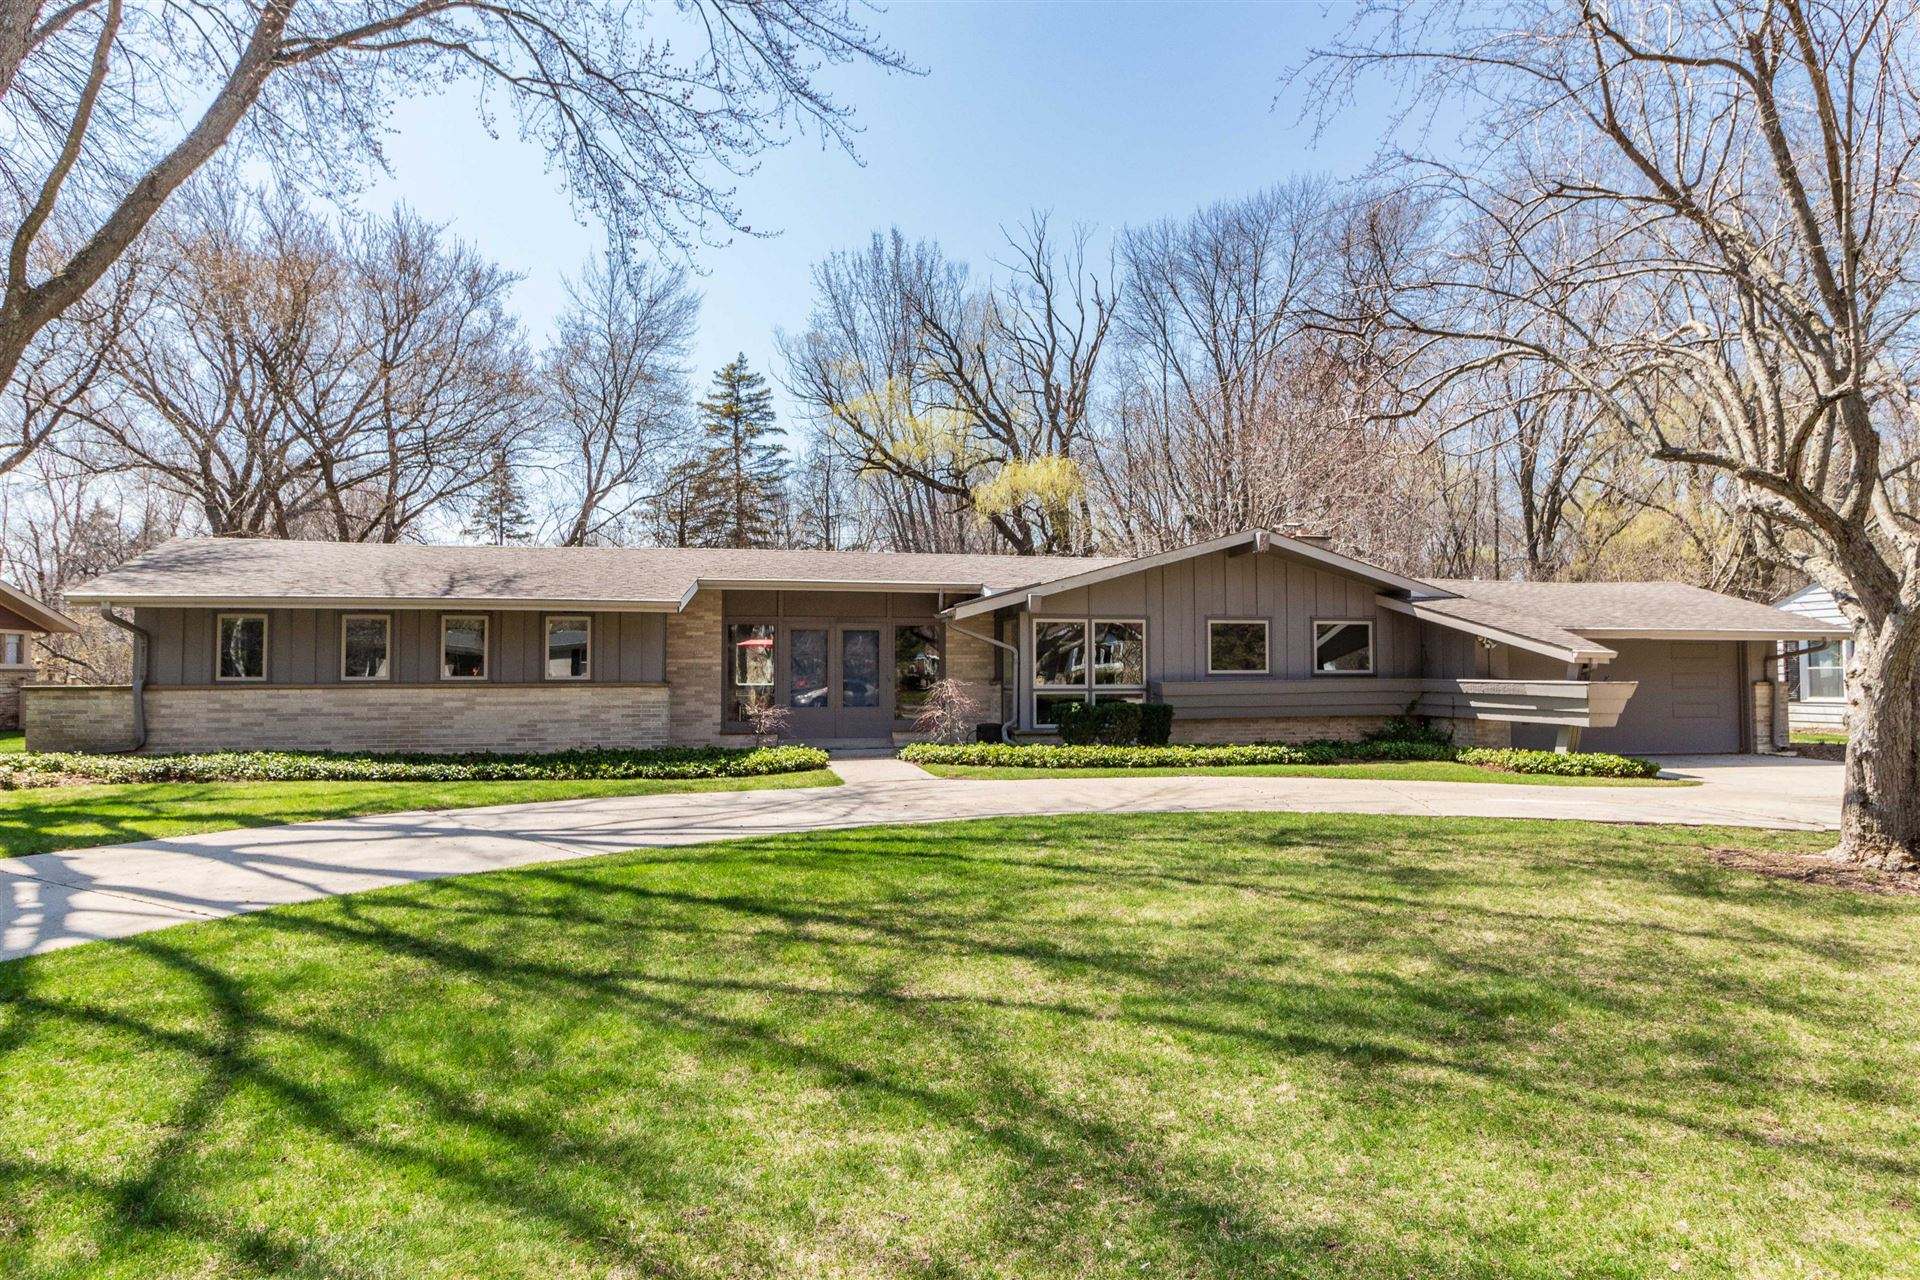 925 E Bay Point Rd, Bayside, WI 53217 - #: 1681175